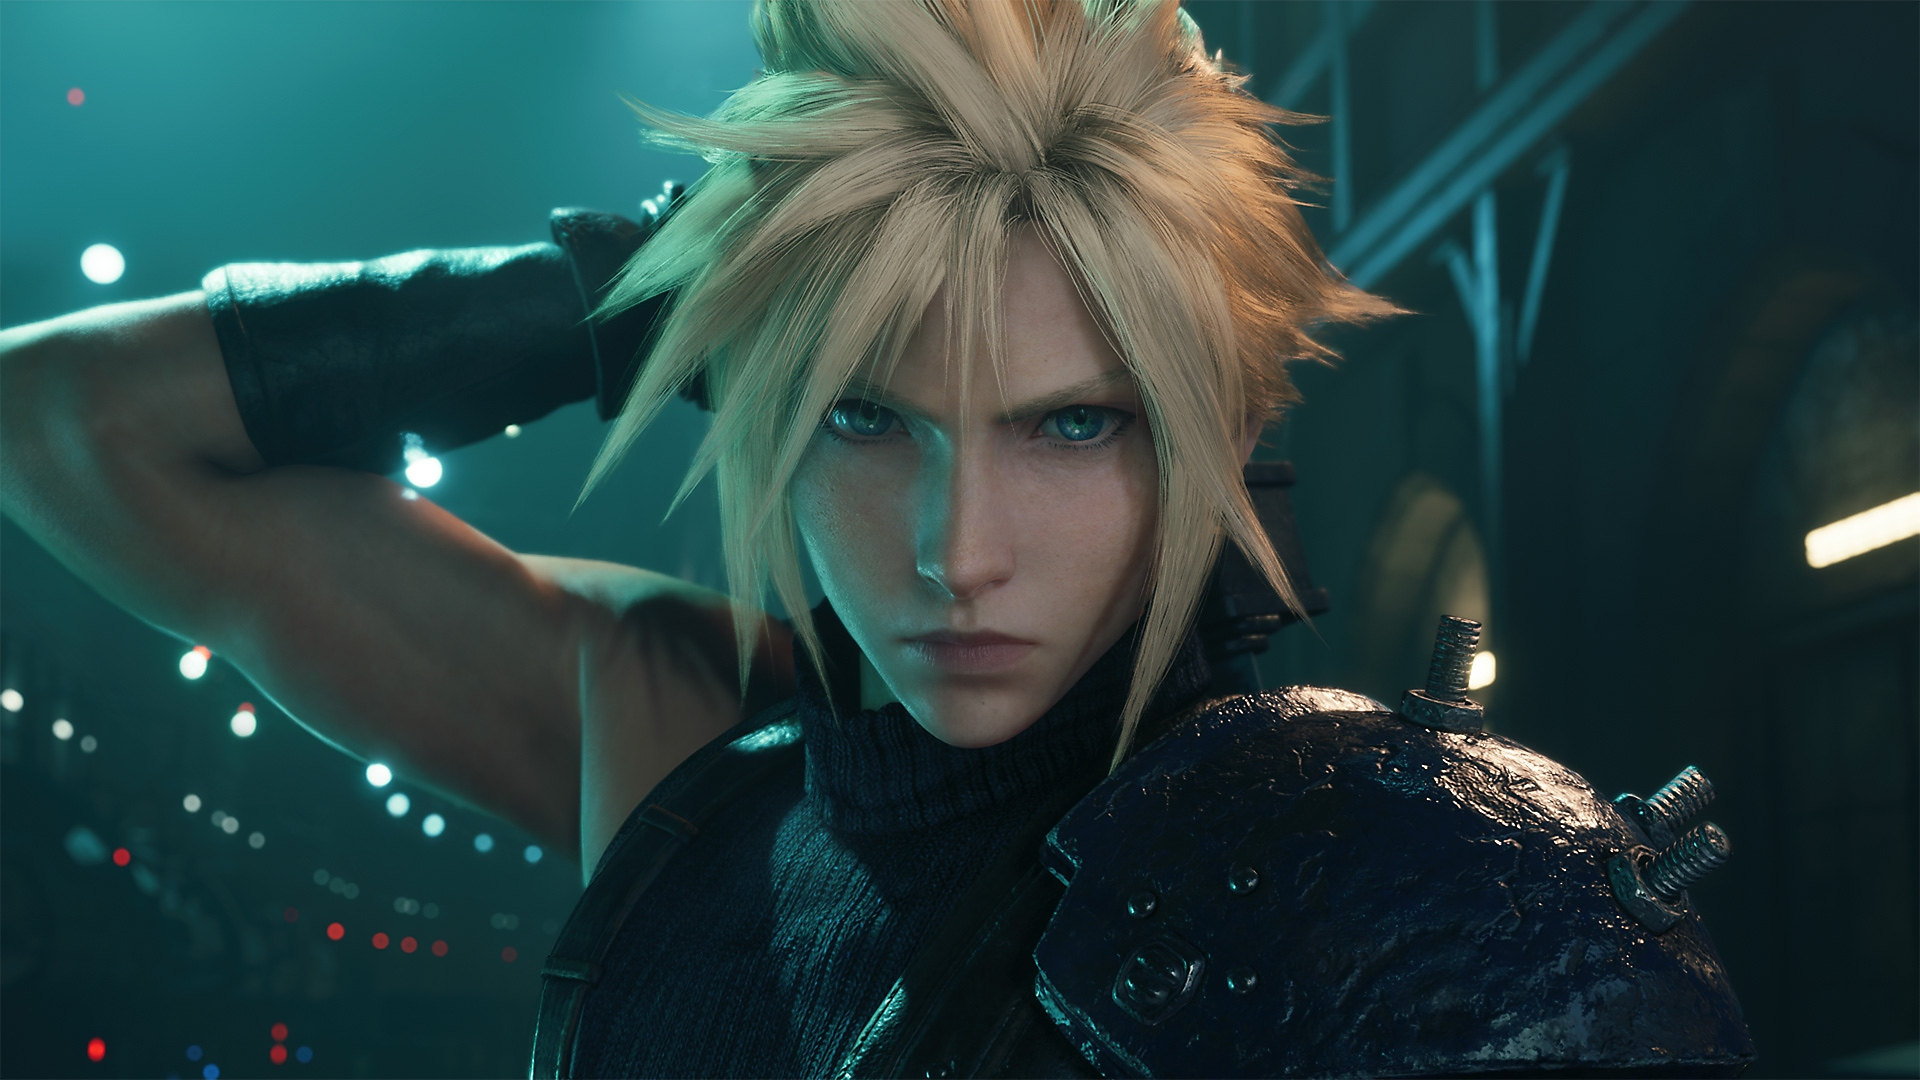 Final Fantasy VII Remake Intergrade - Captura de pantalla de características clave